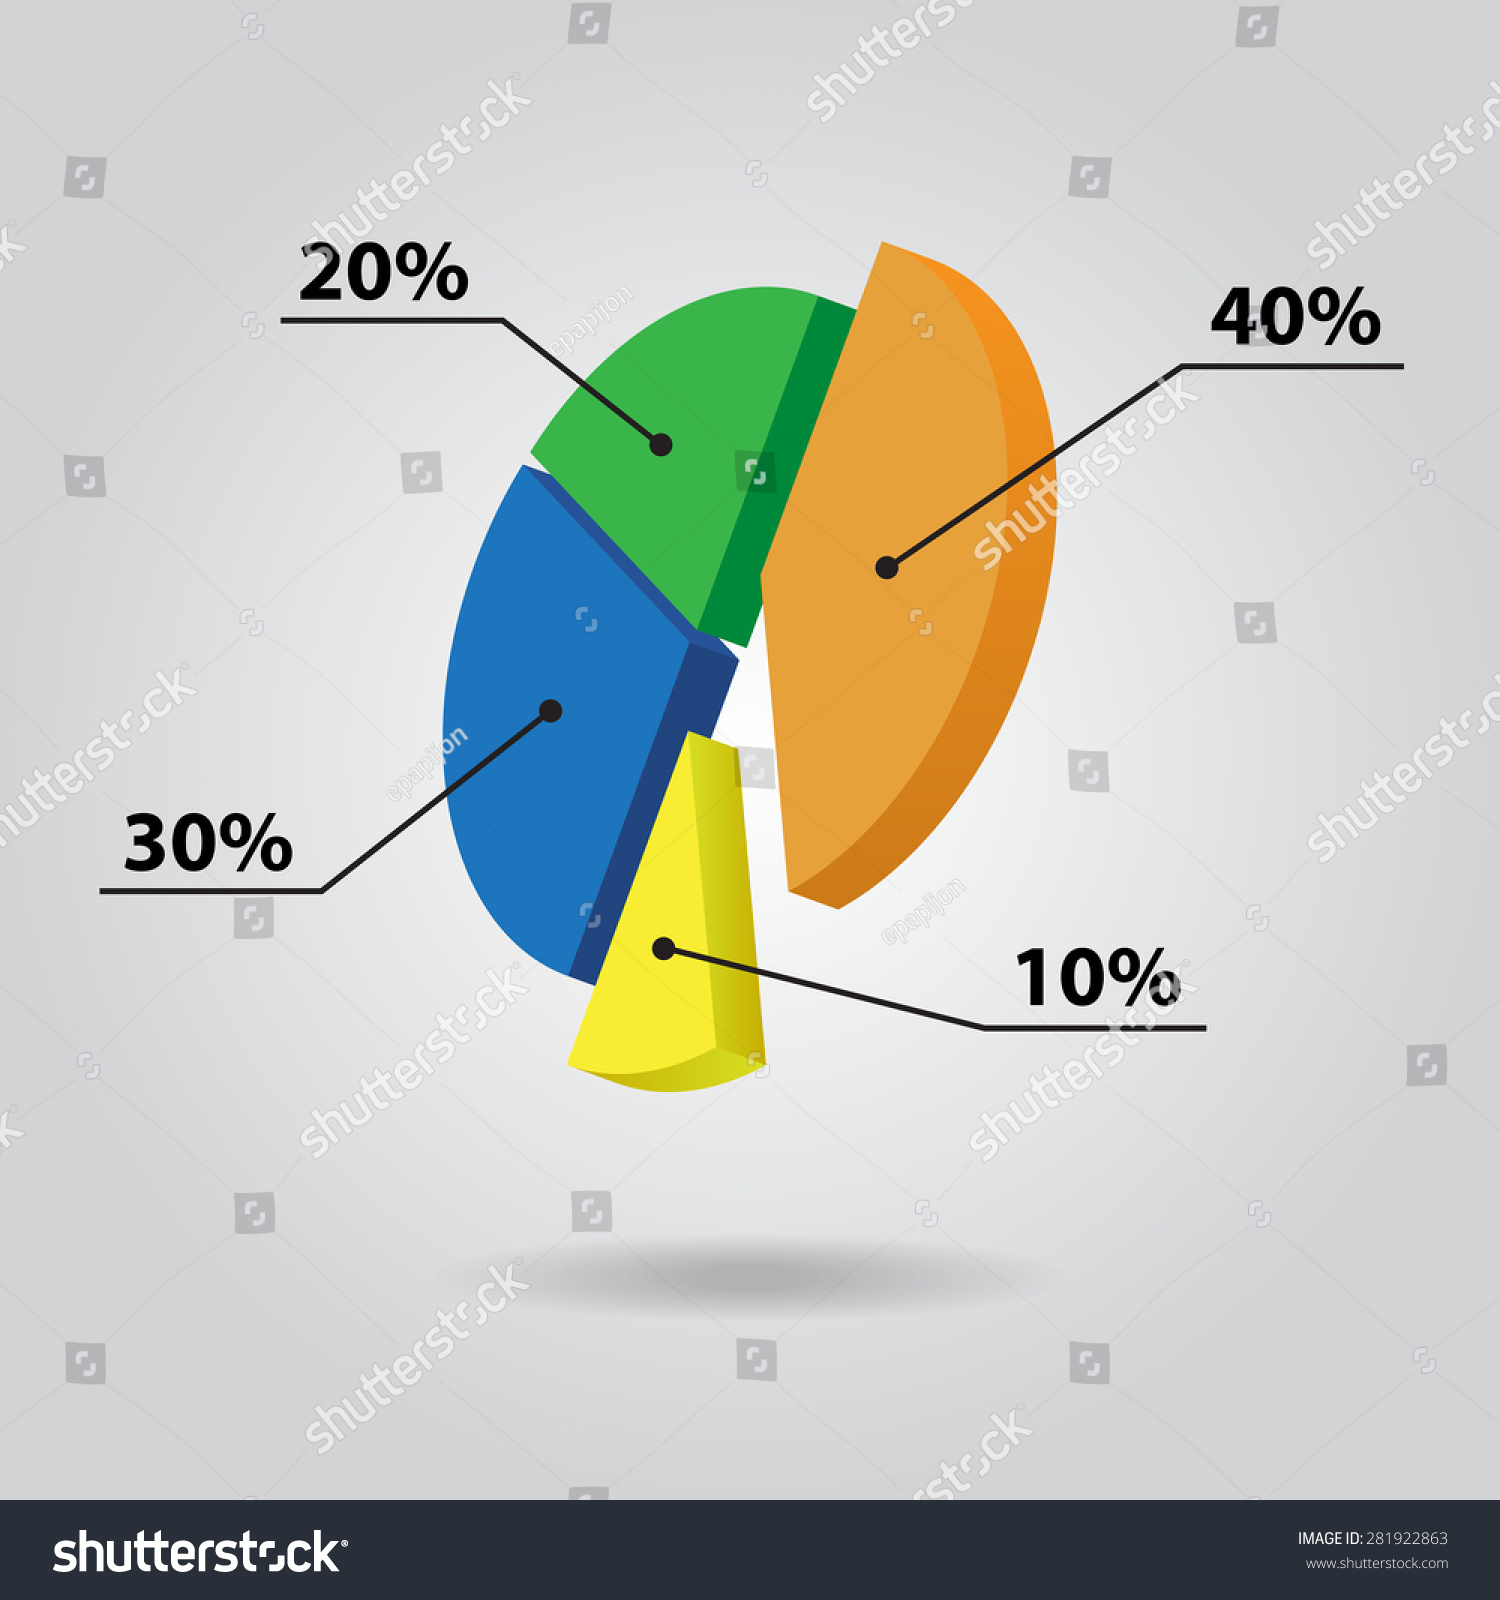 Instant pie chart gallery free any chart examples instant pie chart gallery free any chart examples instant pie chart image collections free any chart nvjuhfo Image collections